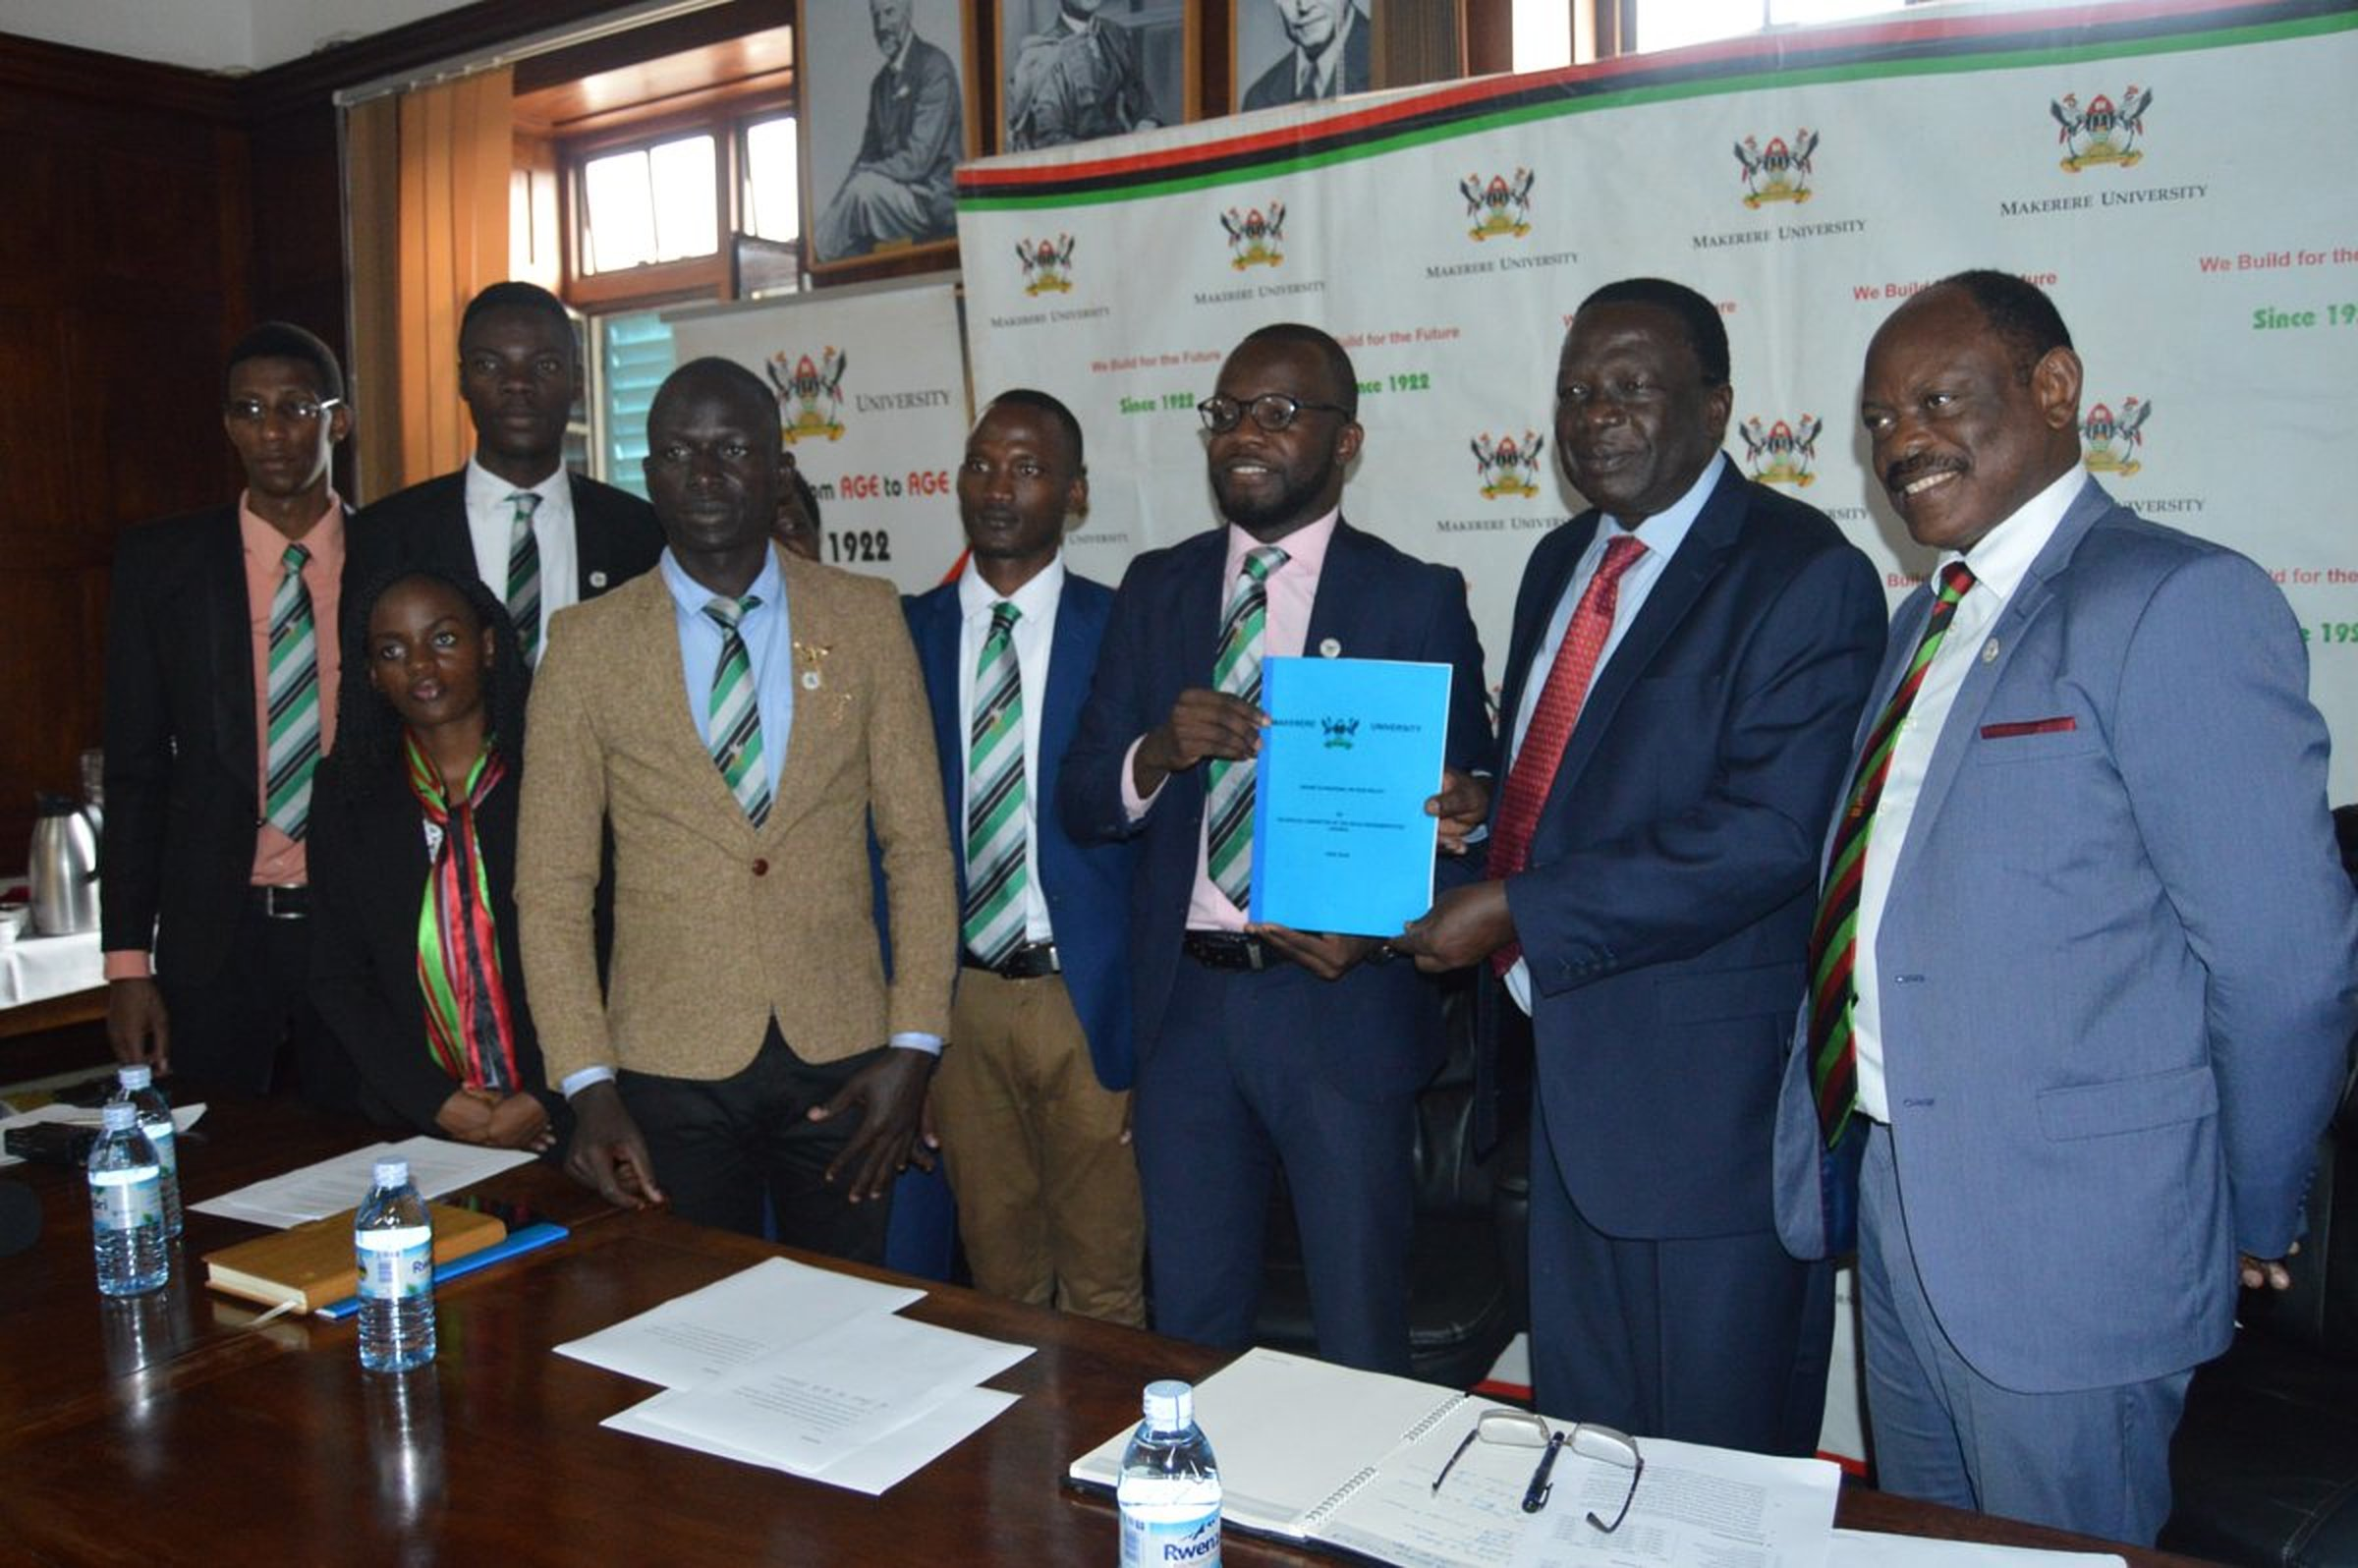 Makerere University Guild Committee led by Guild President Papa Were Salim (3rd Right) hands over a report on fees structure to Chairperson University Council Eng. Dr. Wana Etyem on 2nd July 2018. Right is the Vice Chancellor Prof. Barnabas Nawangwe (Credit: MUK)